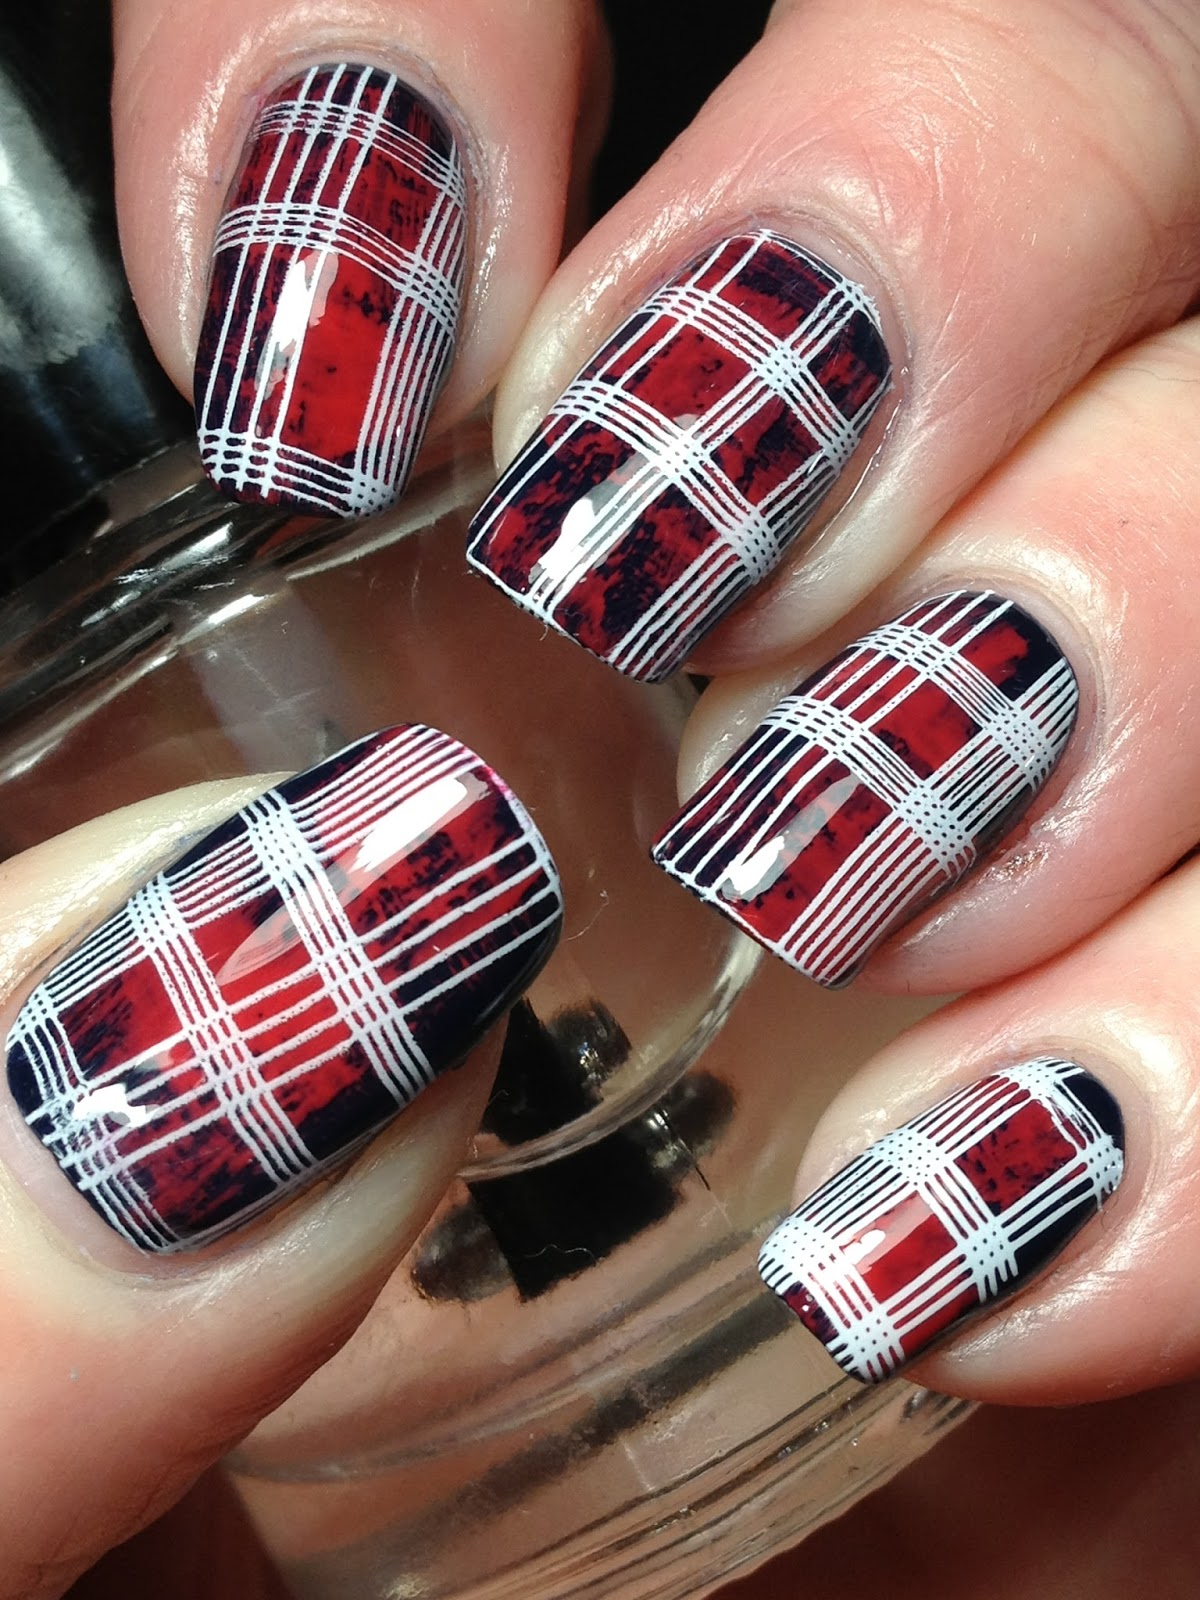 Canadian Nail Fanatic: Digit-al Dozen Does NEW & Improved; Day 3